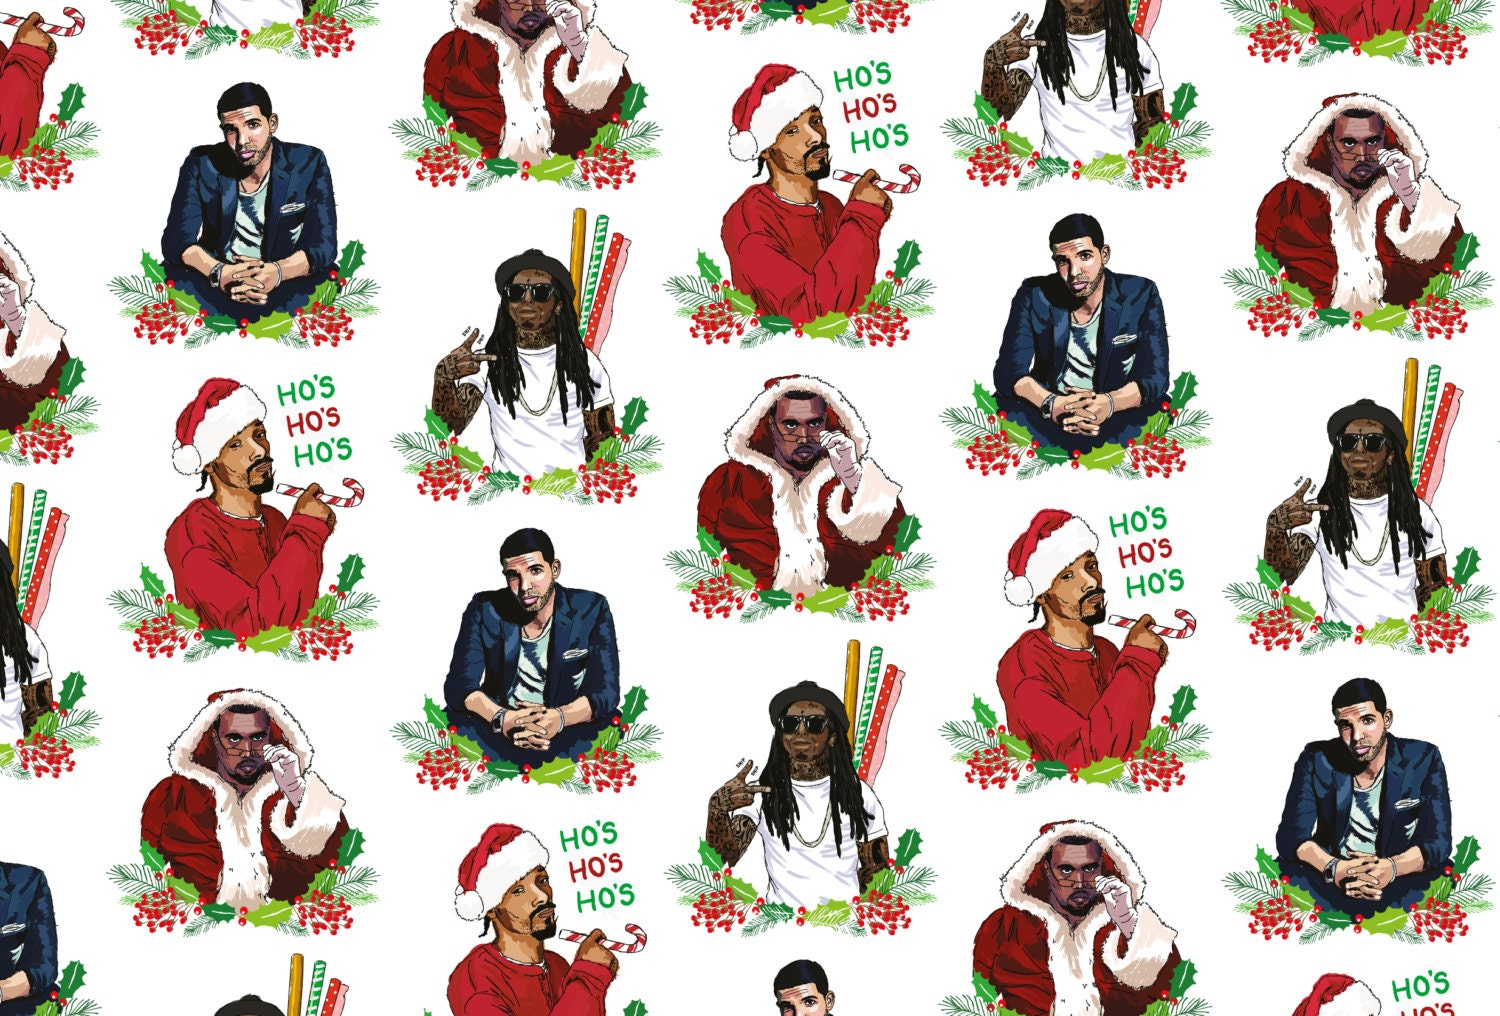 Rapping Paper Kanye West Drake Lil Wayne & Snoop Dogg A2